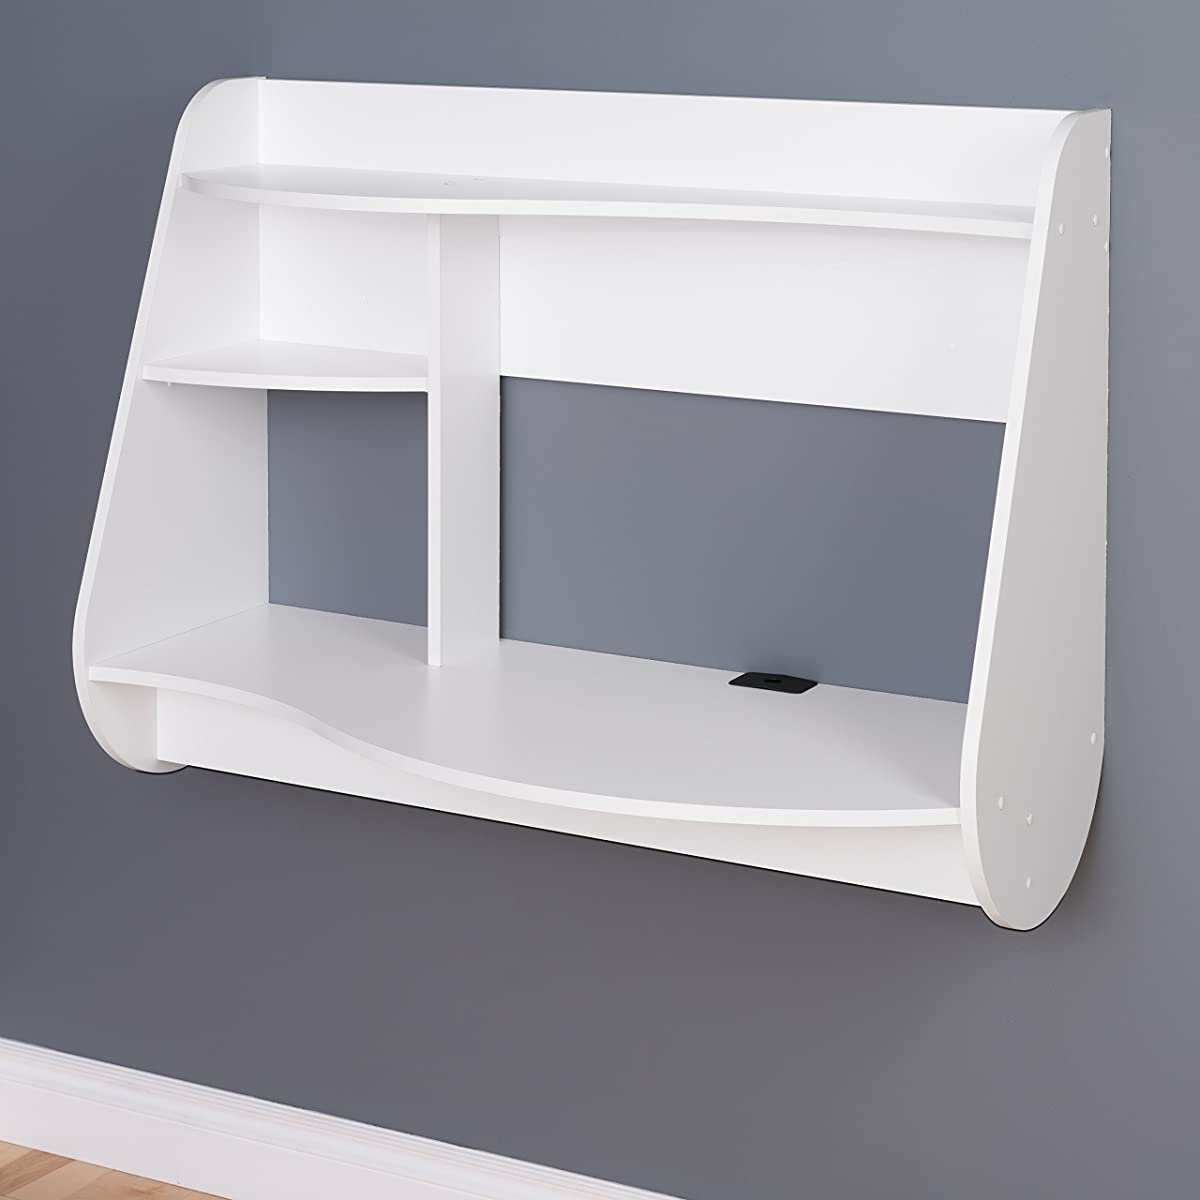 Prepac Kurv Floating Desk, White